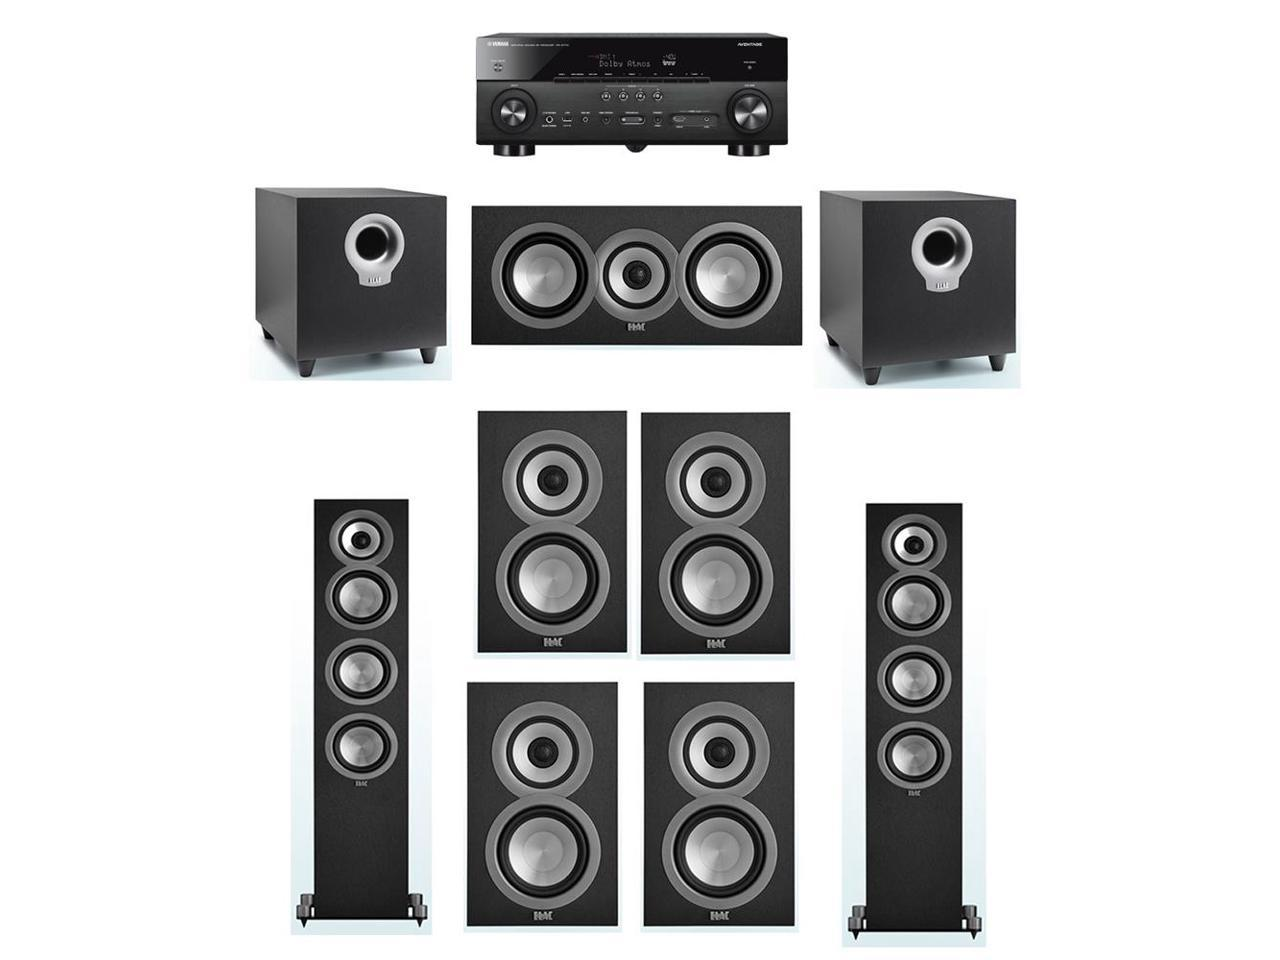 ELAC Uni-Fi 7.2 System with 2 ELAC UF5 Floorstanding Speakers, 1 ELAC UC5 Center Speaker, 4 ELAC UB5 Speaker, 2 ELAC Debut S10 Powered Subwoofer, 1 Yamaha RX-A770 A/V Receiver